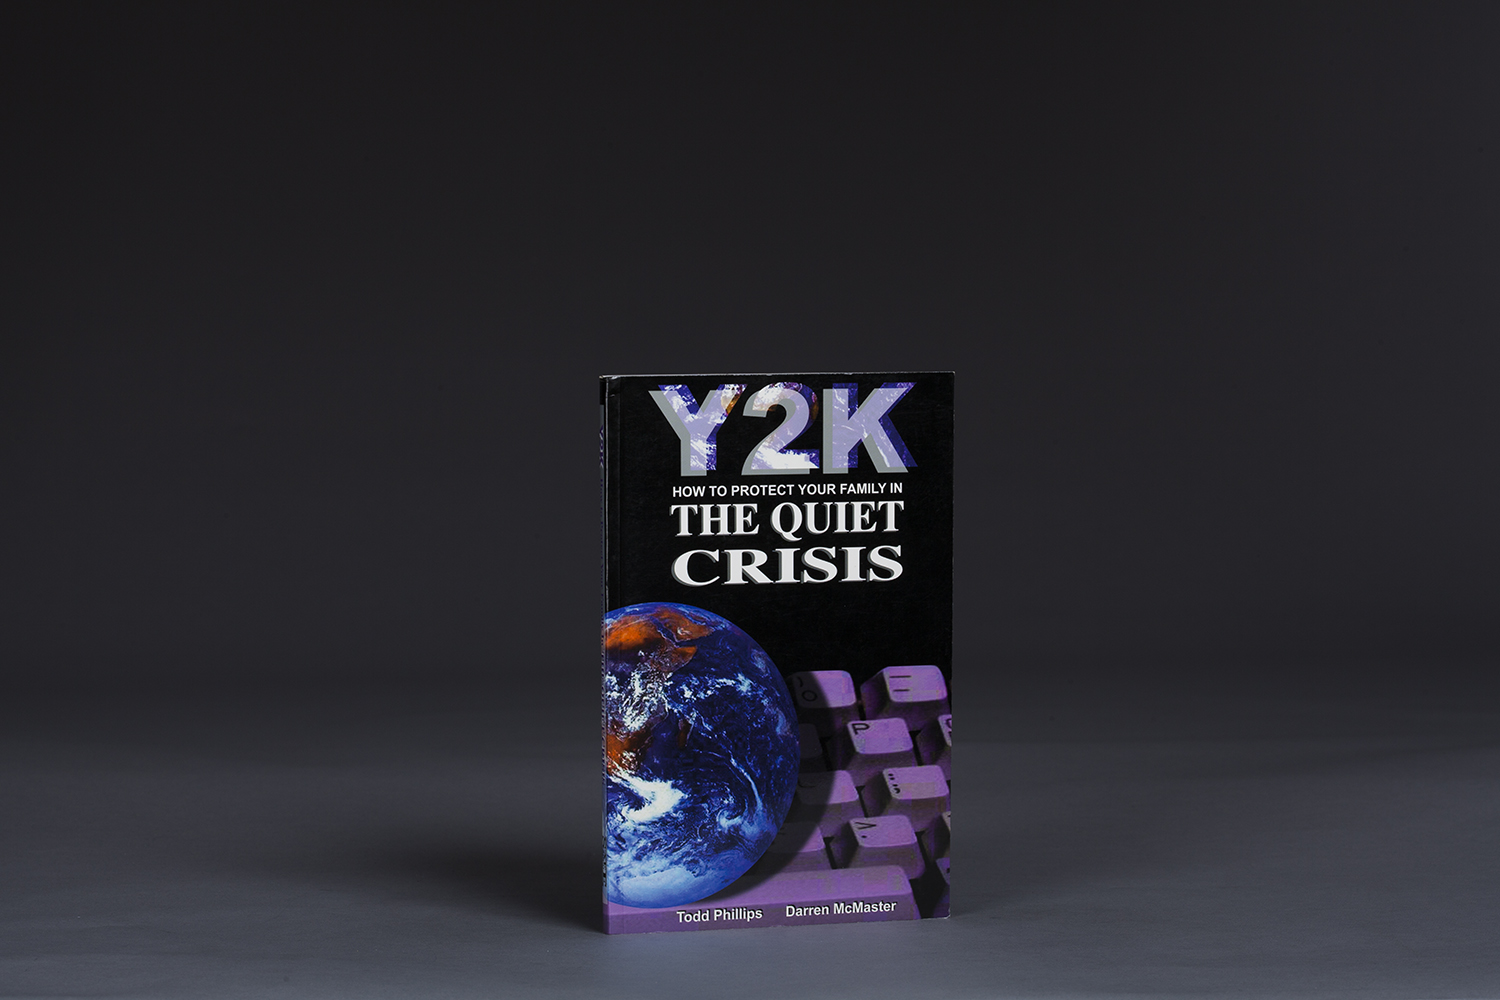 Y2K - How to Protect Your Family in the Quiet Crisis - 0600 Cover.jpg